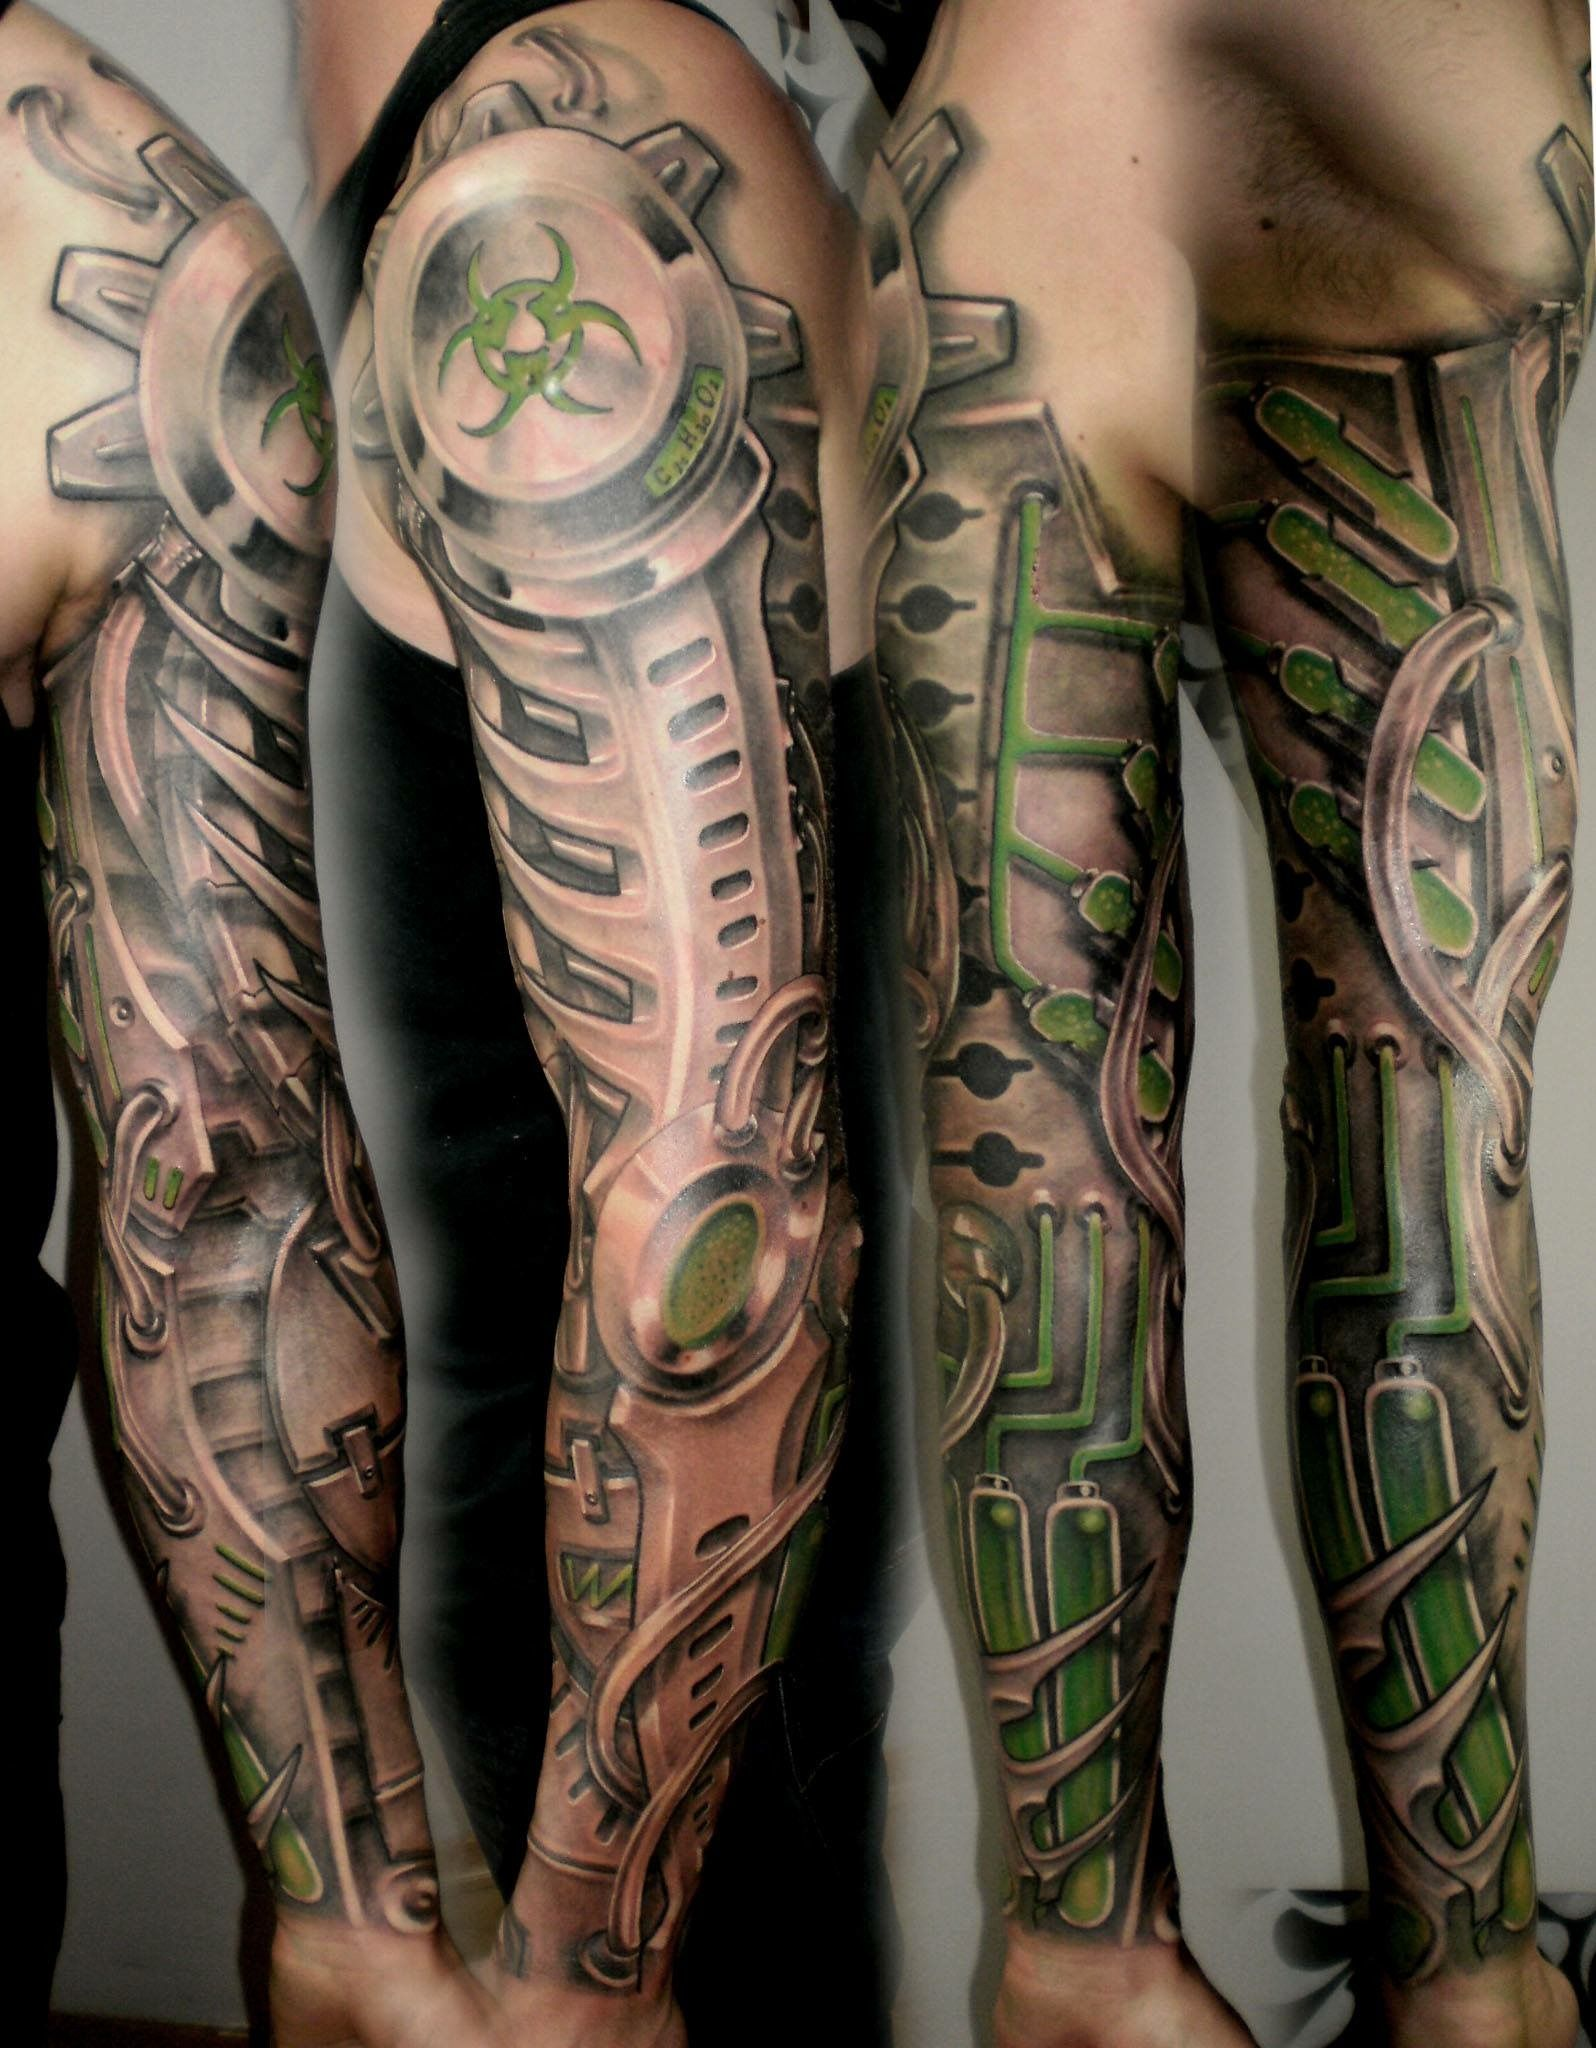 Biomechanik Tattoo Ganzer Arm pinbrad arimond on likes/interests | biomechanical